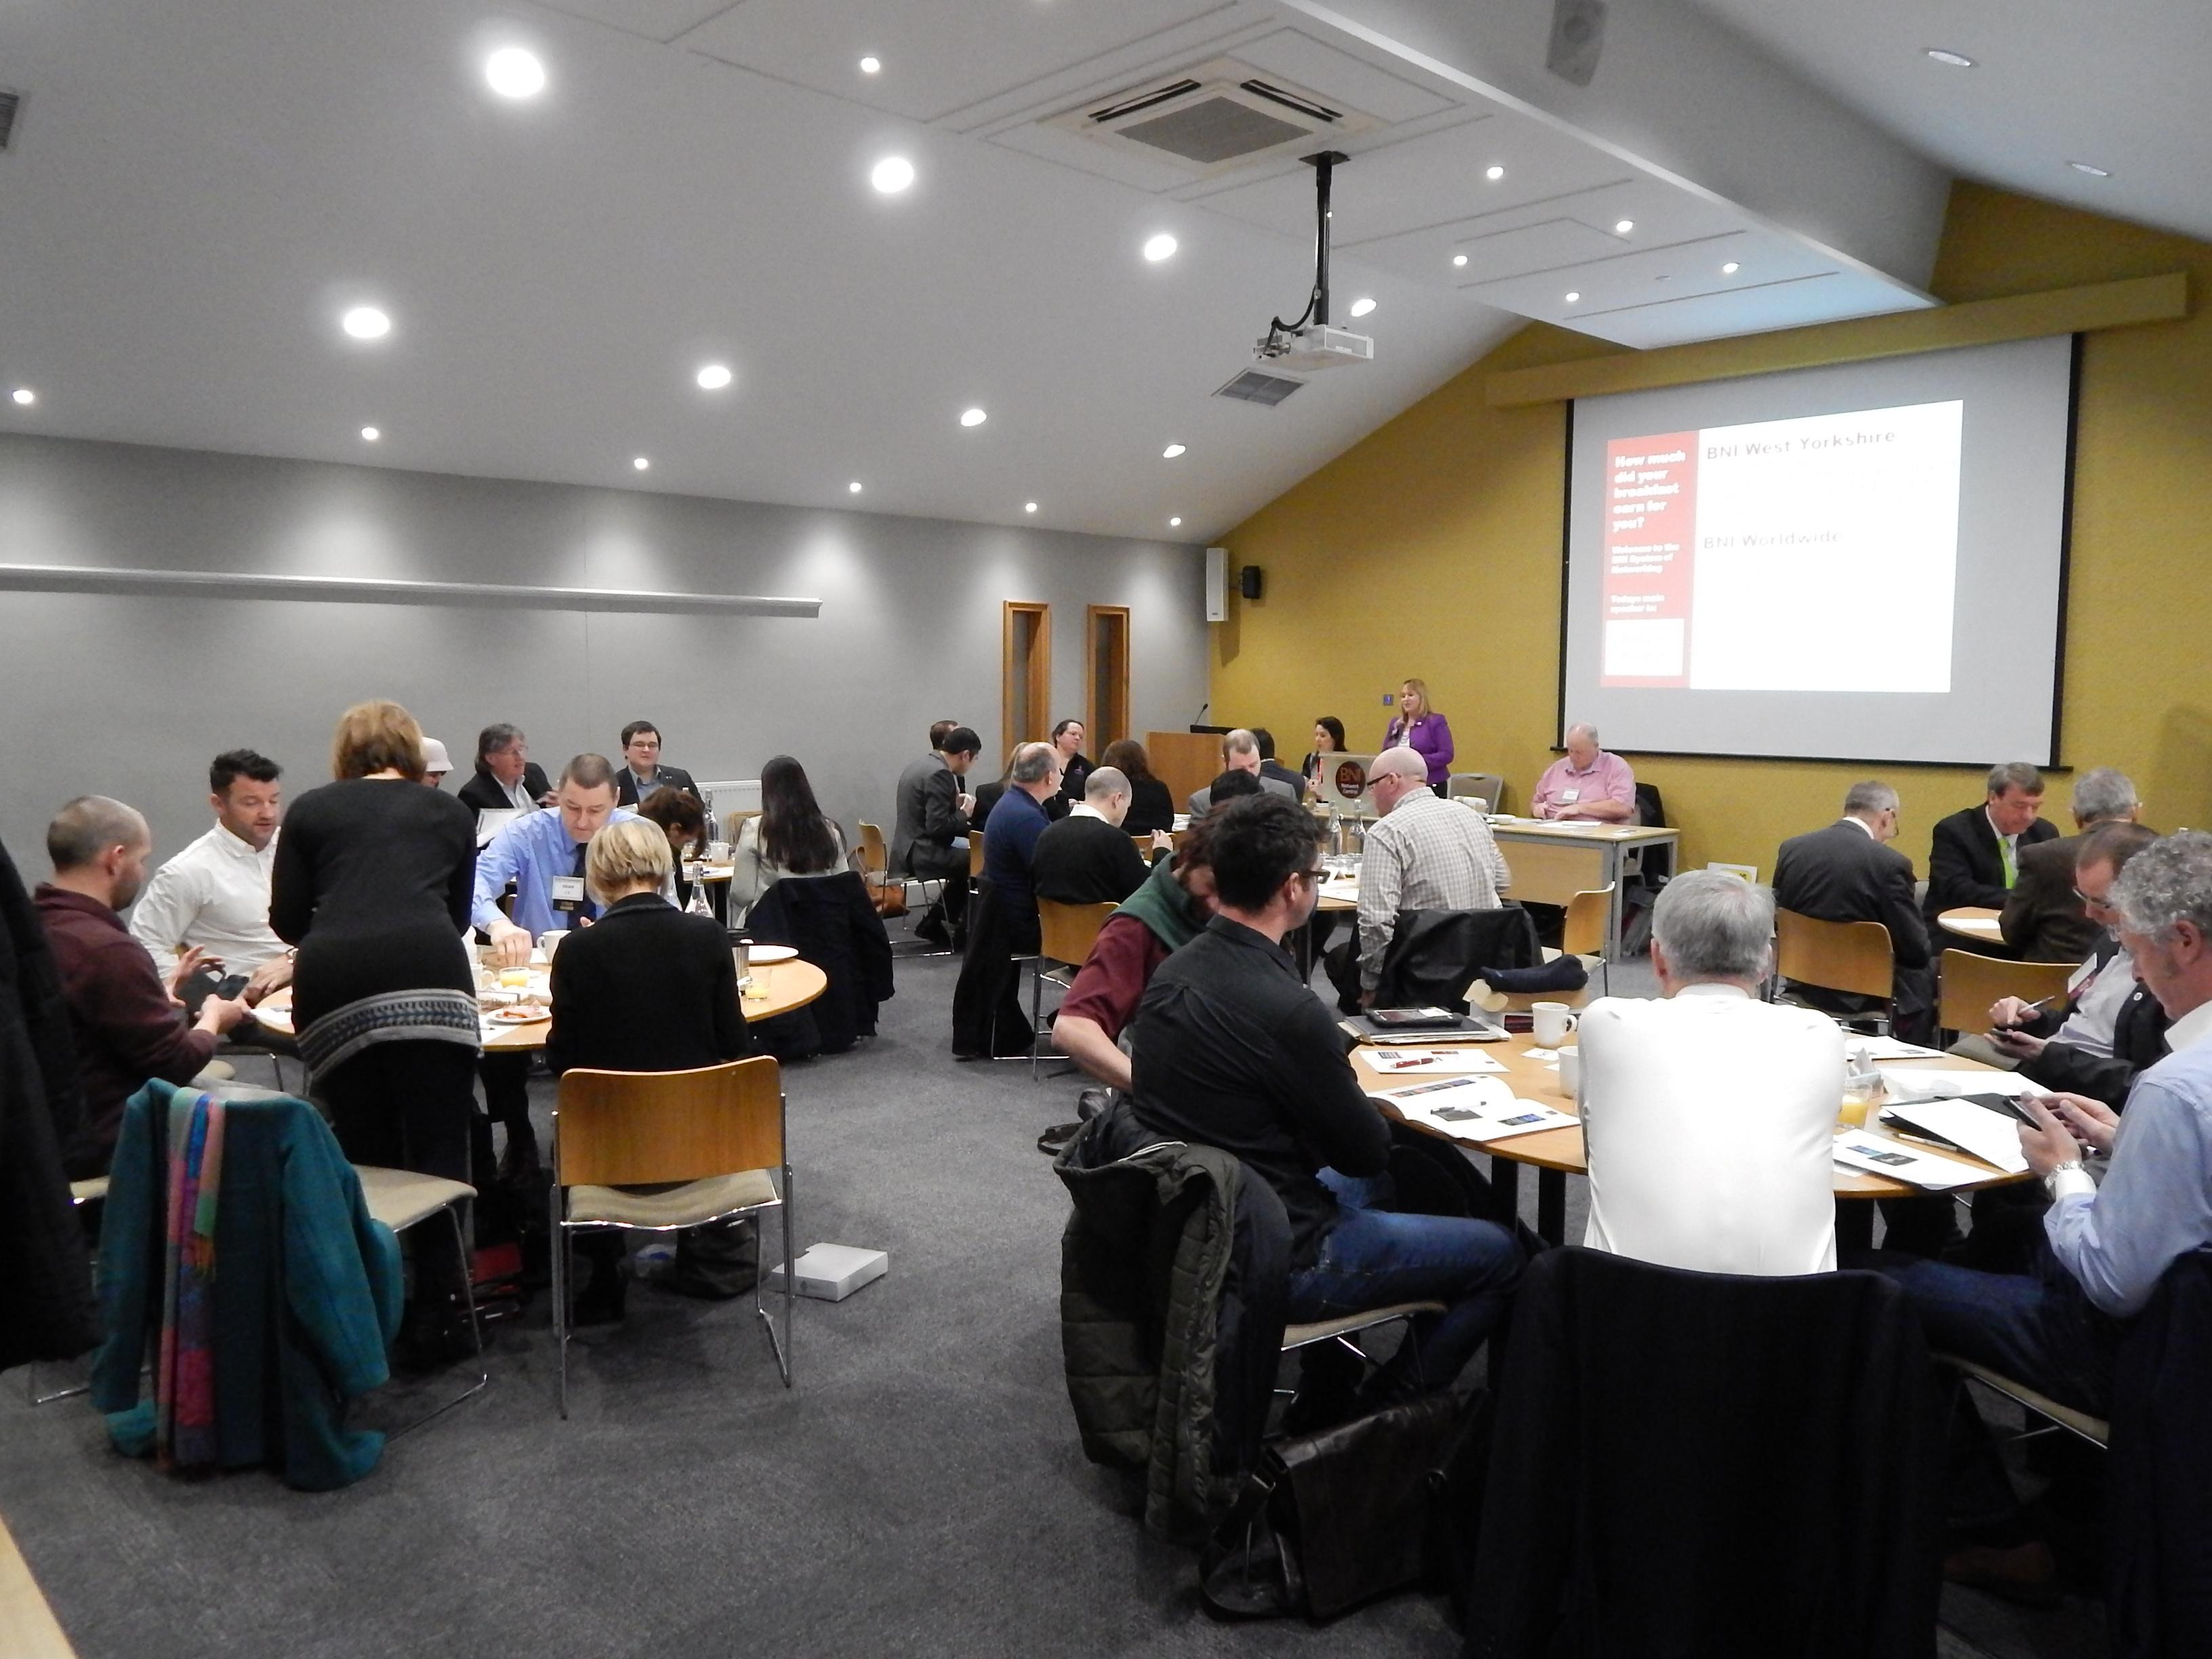 Business Networking at Network Central Leeds